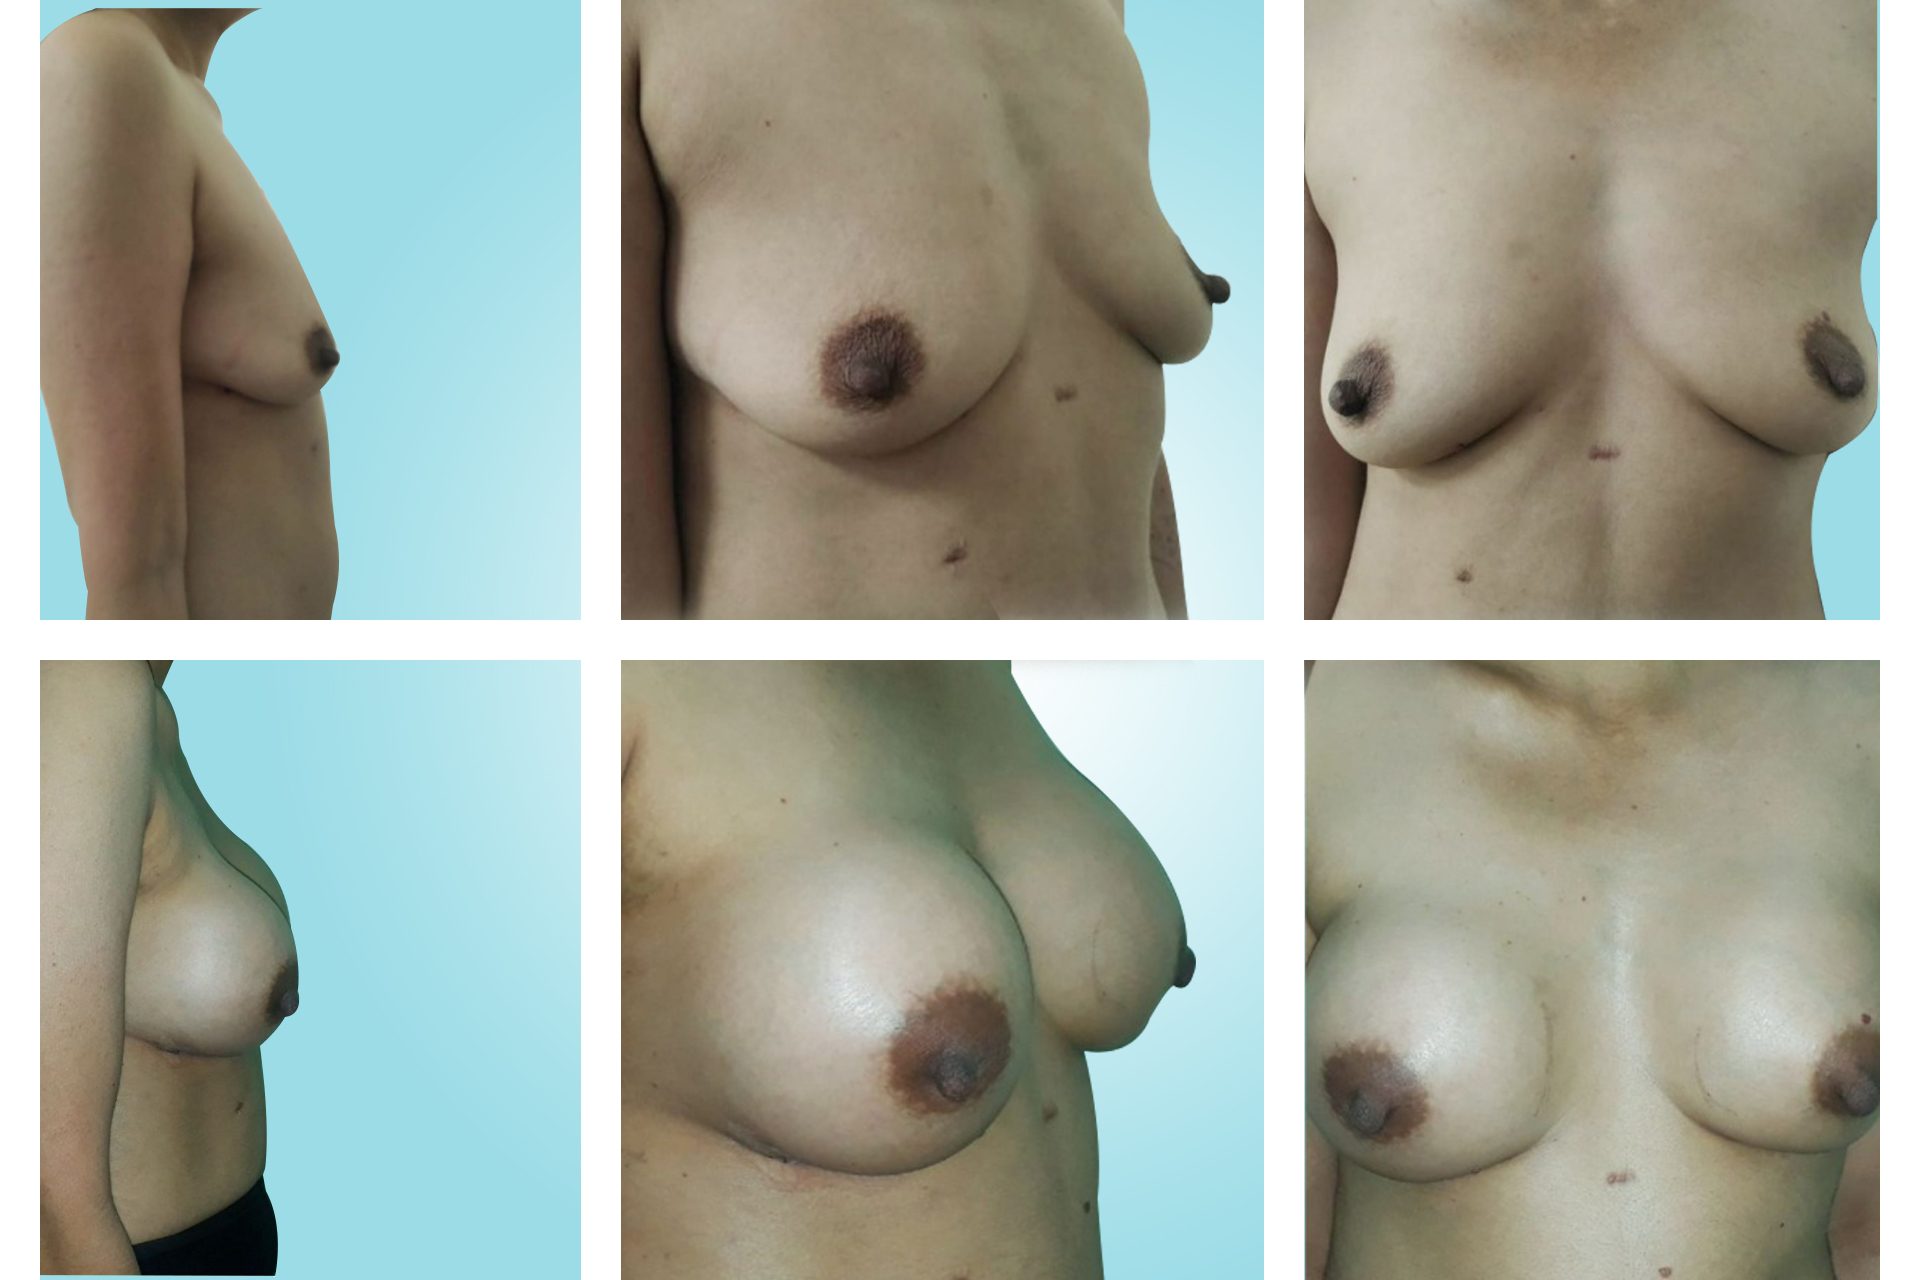 MASTOPEXY/BREAST LIFT SURGERY